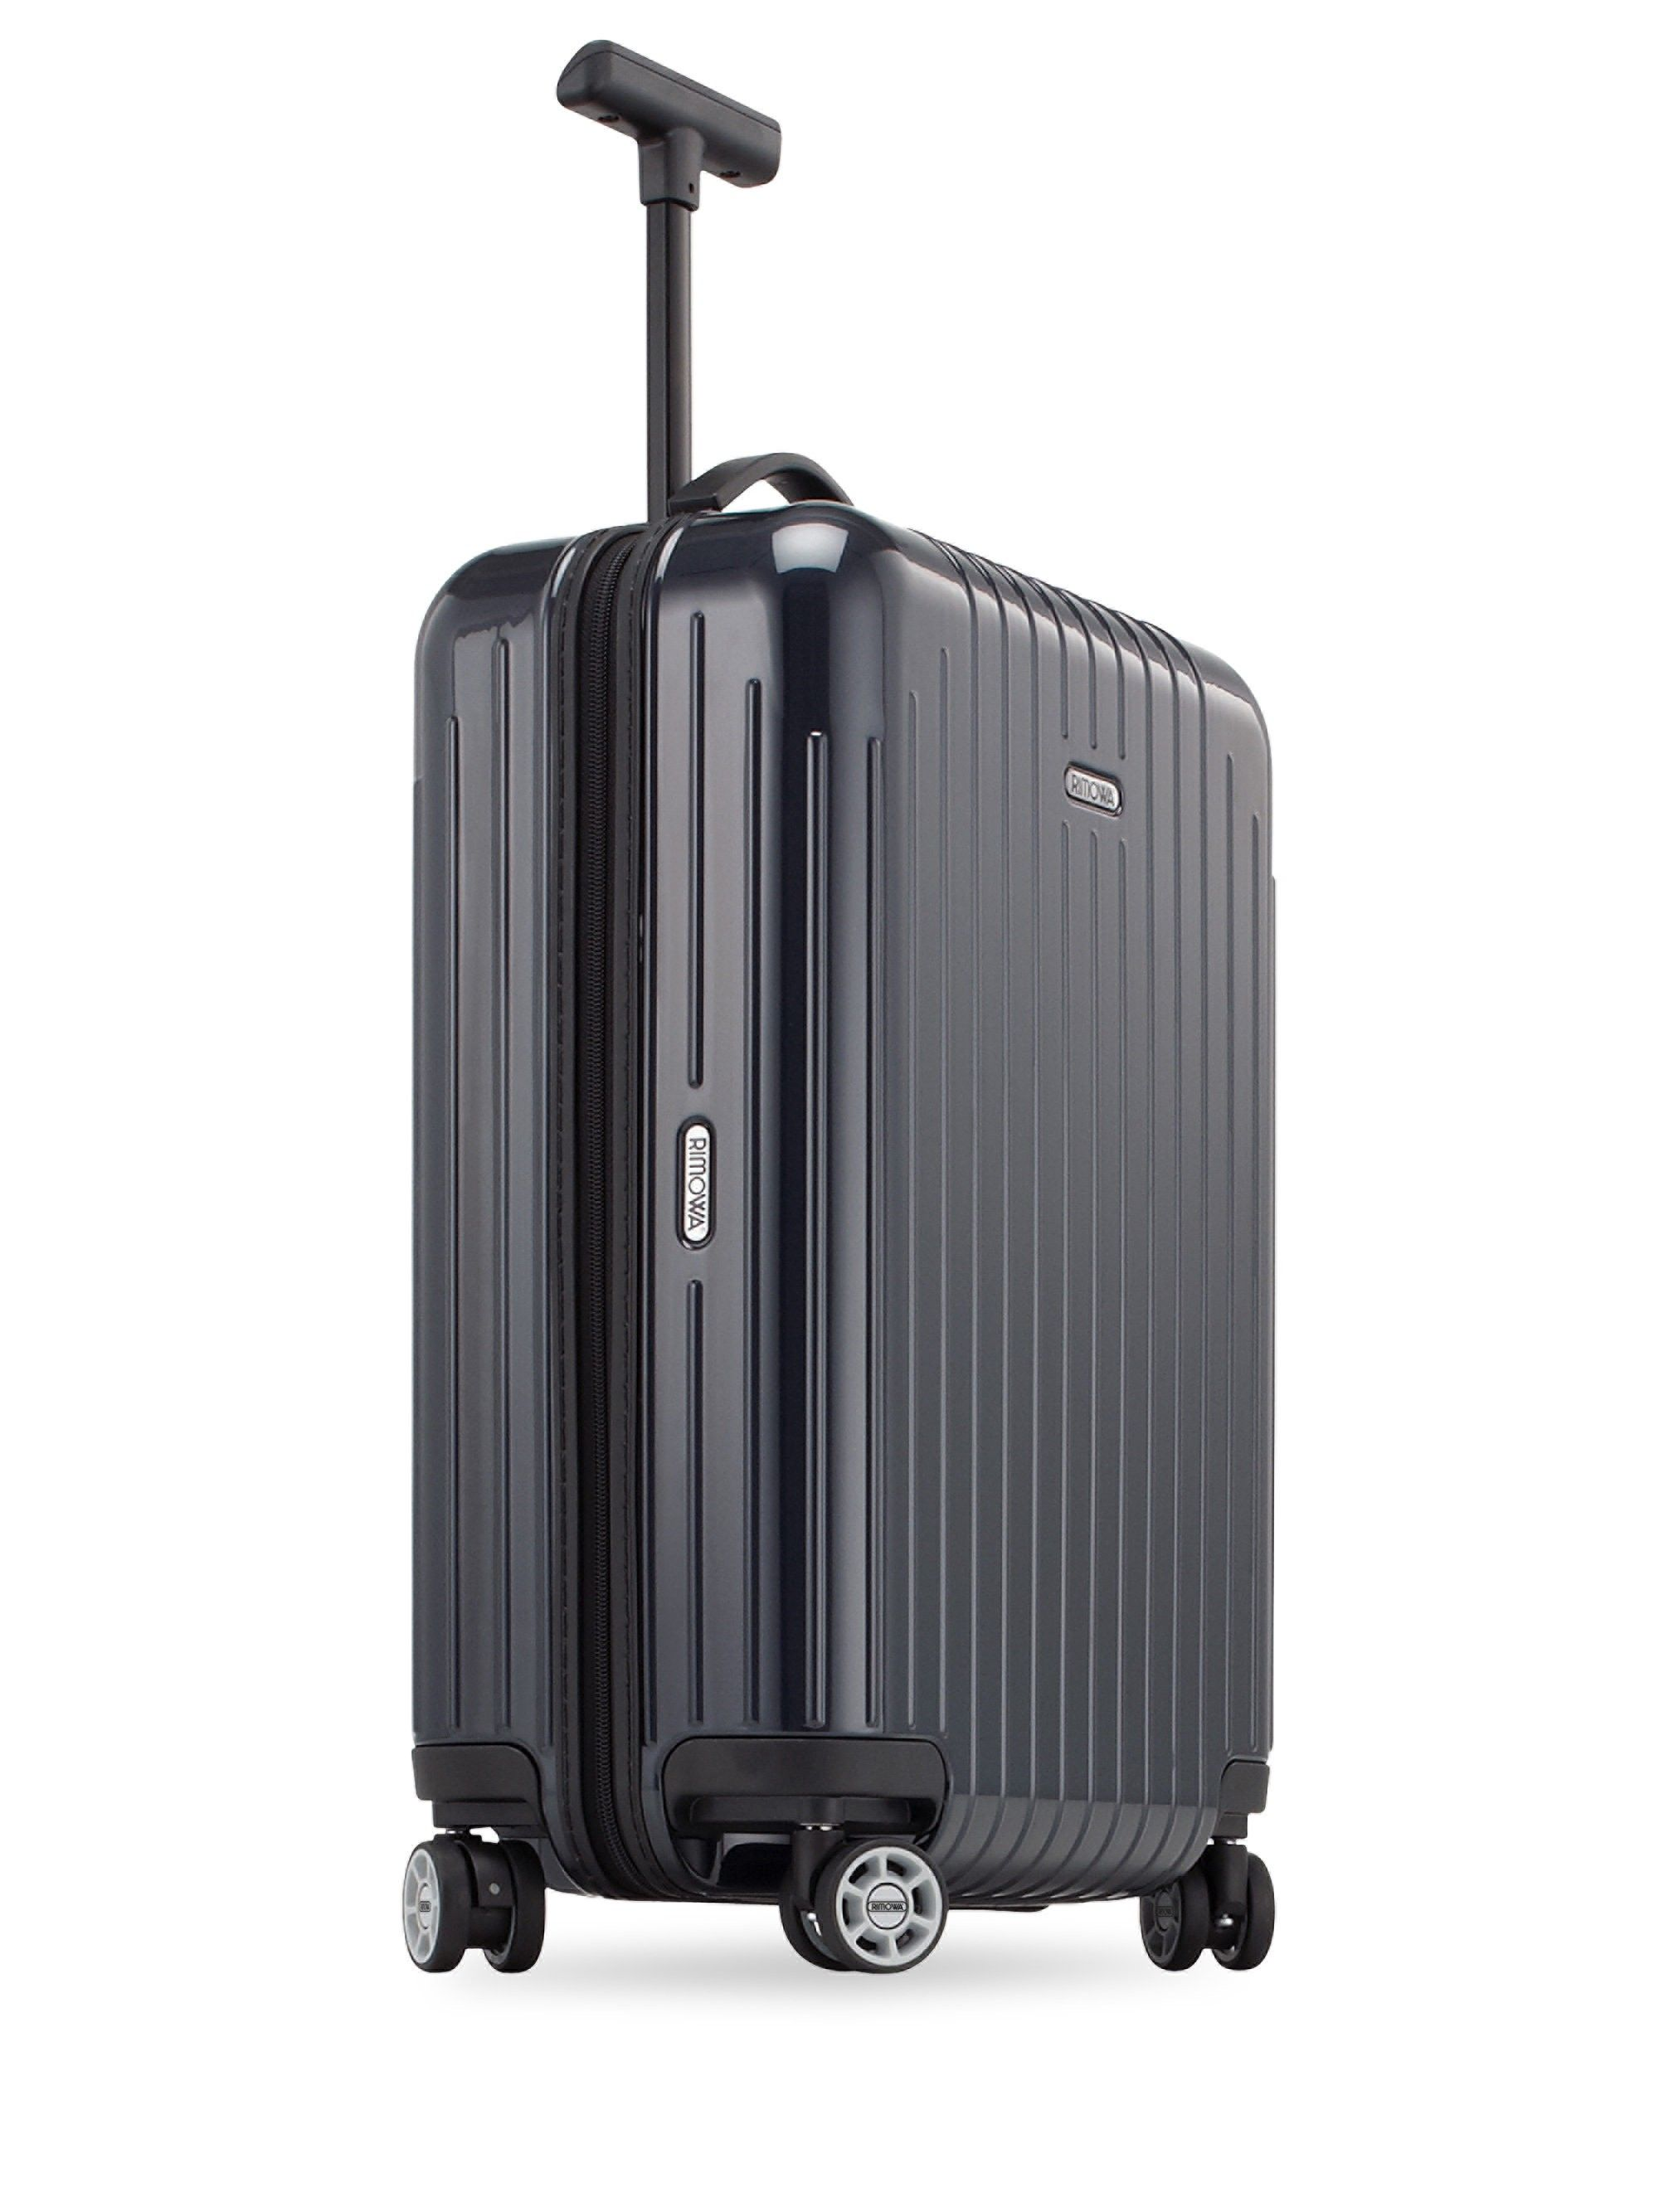 3856237a8 Salsa Air Cabin Spinner Suitcase by Rimowa | Products | Spinner ...